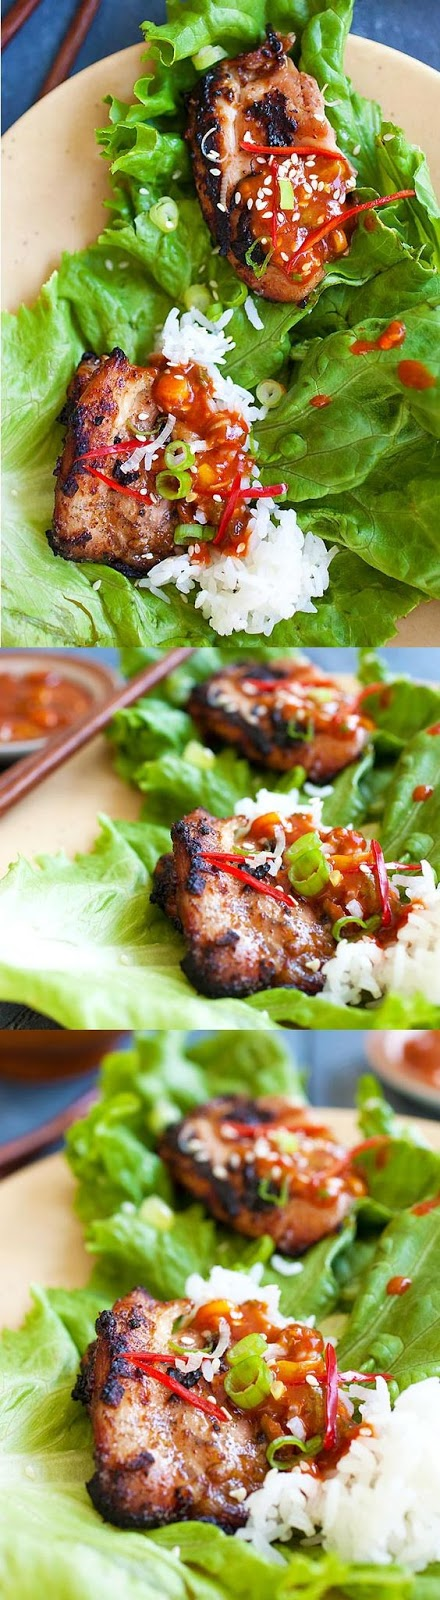 Korean BBQ Chicken #Korean #BBQ #Chicken #DESSERTS #HEALTHYFOOD #EASY_RECIPES #DINNER #LAUCH #DELICIOUS #EASY #HOLIDAYS #RECIPE #SPECIAL_DIET #WORLD_CUISINE #CAKE #GRILL #APPETIZERS #HEALTHY_RECIPES #DRINKS #COOKING_METHOD #ITALIAN_RECIPES #MEAT #VEGAN_RECIPES #COOKIES #PASTA #FRUIT #SALAD #SOUP_APPETIZERS #NON_ALCOHOLIC_DRINKS #MEAL_PLANNING #VEGETABLES #SOUP #PASTRY #CHOCOLATE #DAIRY #ALCOHOLIC_DRINKS #BULGUR_SALAD #BAKING #SNACKS #BEEF_RECIPES #MEAT_APPETIZERS #MEXICAN_RECIPES #BREAD #ASIAN_RECIPES #SEAFOOD_APPETIZERS #MUFFINS #BREAKFAST_AND_BRUNCH #CONDIMENTS #CUPCAKES #CHEESE #CHICKEN_RECIPES #PIE #COFFEE #NO_BAKE_DESSERTS #HEALTHY_SNACKS #SEAFOOD #GRAIN #LUNCHES_DINNERS #MEXICAN #QUICK_BREAD #LIQUOR